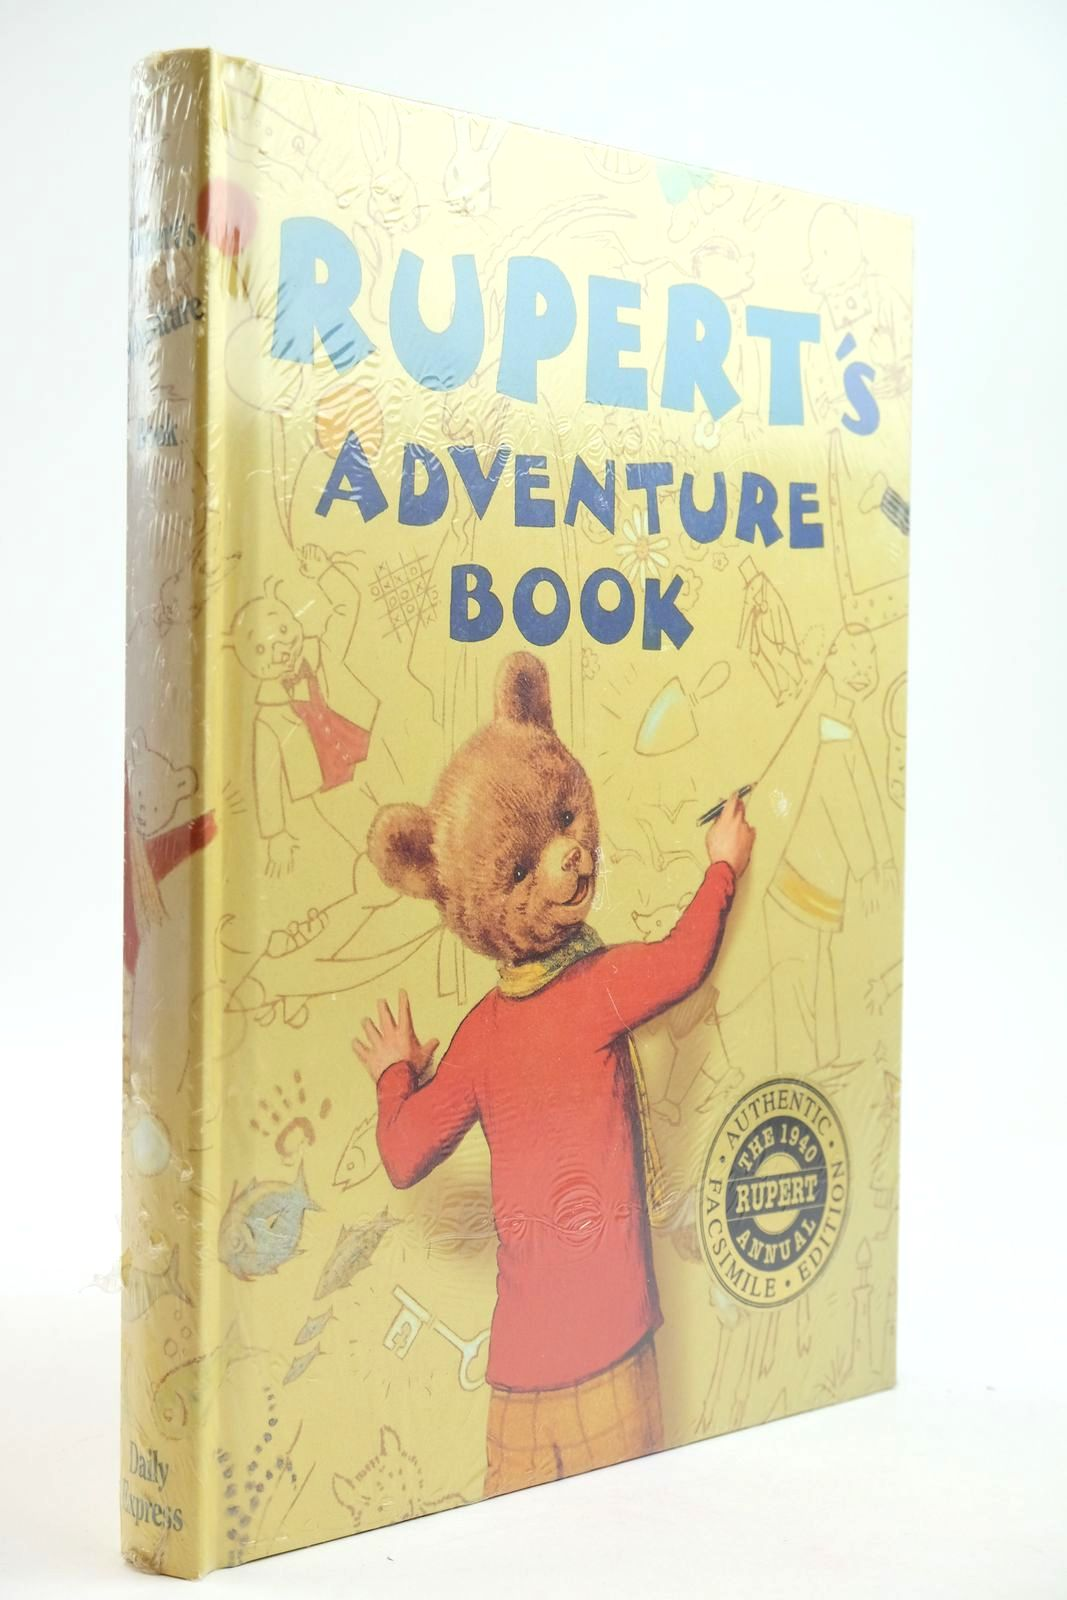 Photo of RUPERT ANNUAL 1940 (FACSIMILE) - RUPERT'S ADVENTURE BOOK- Stock Number: 2133909